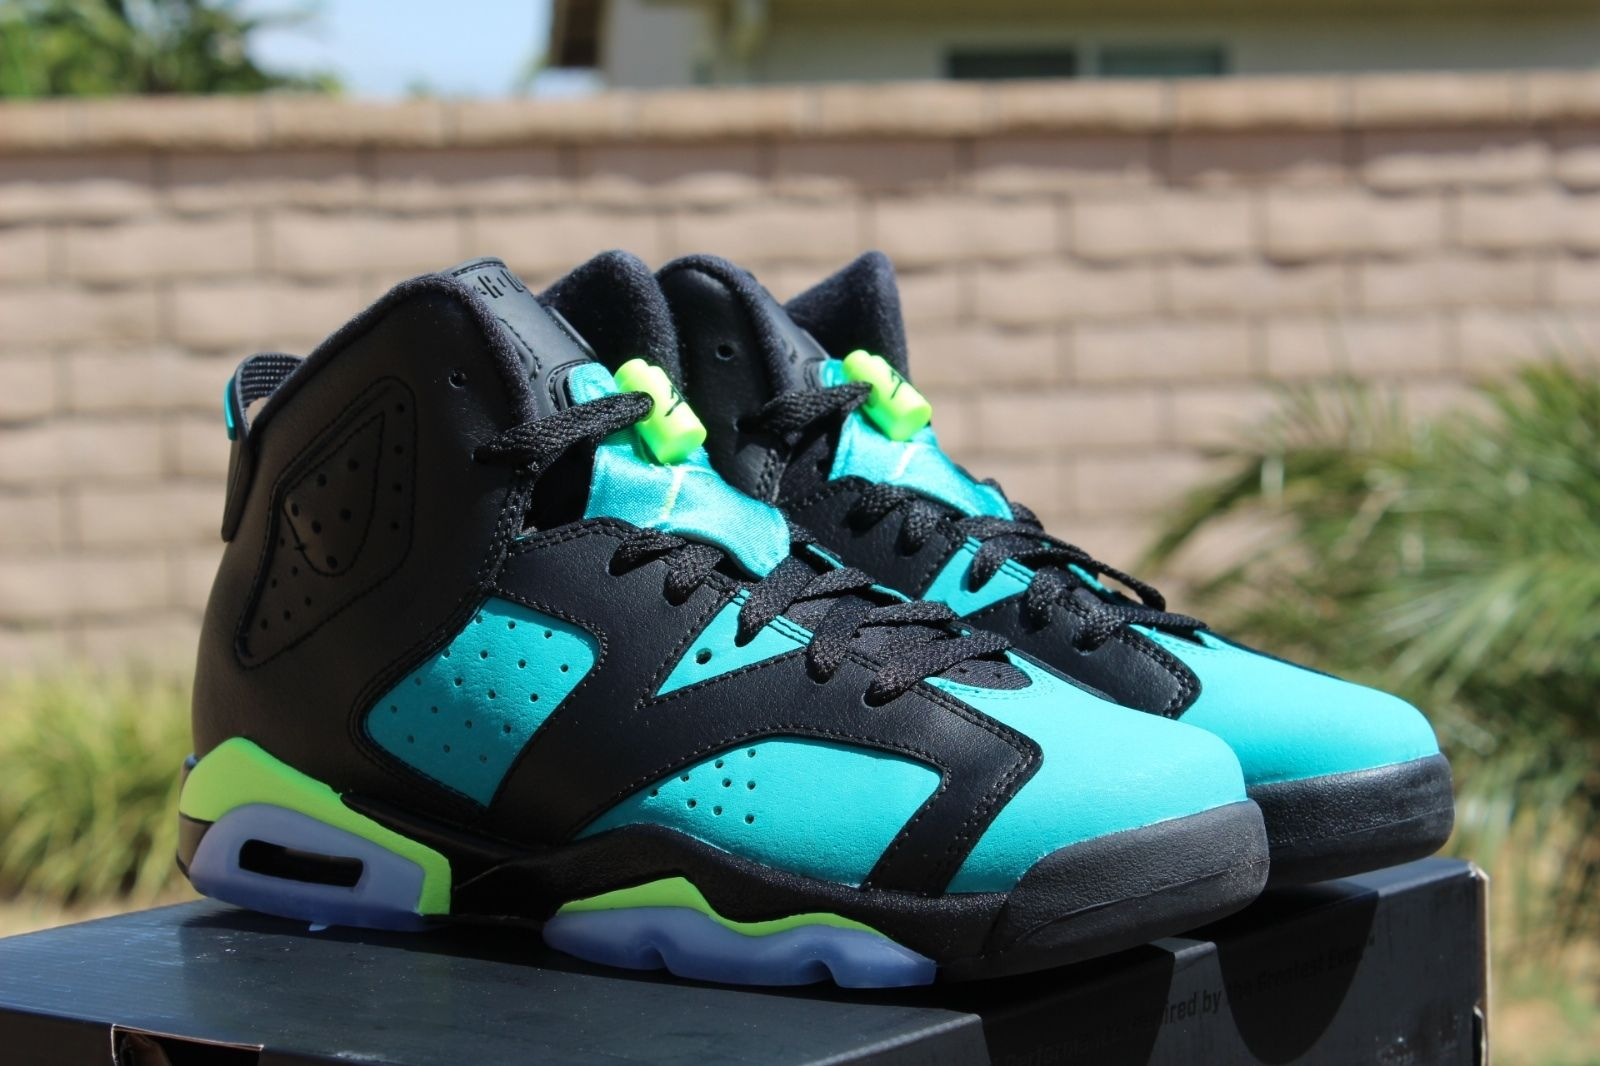 air-jordan-6-retro-gs-volt-ice-turbo-green-4